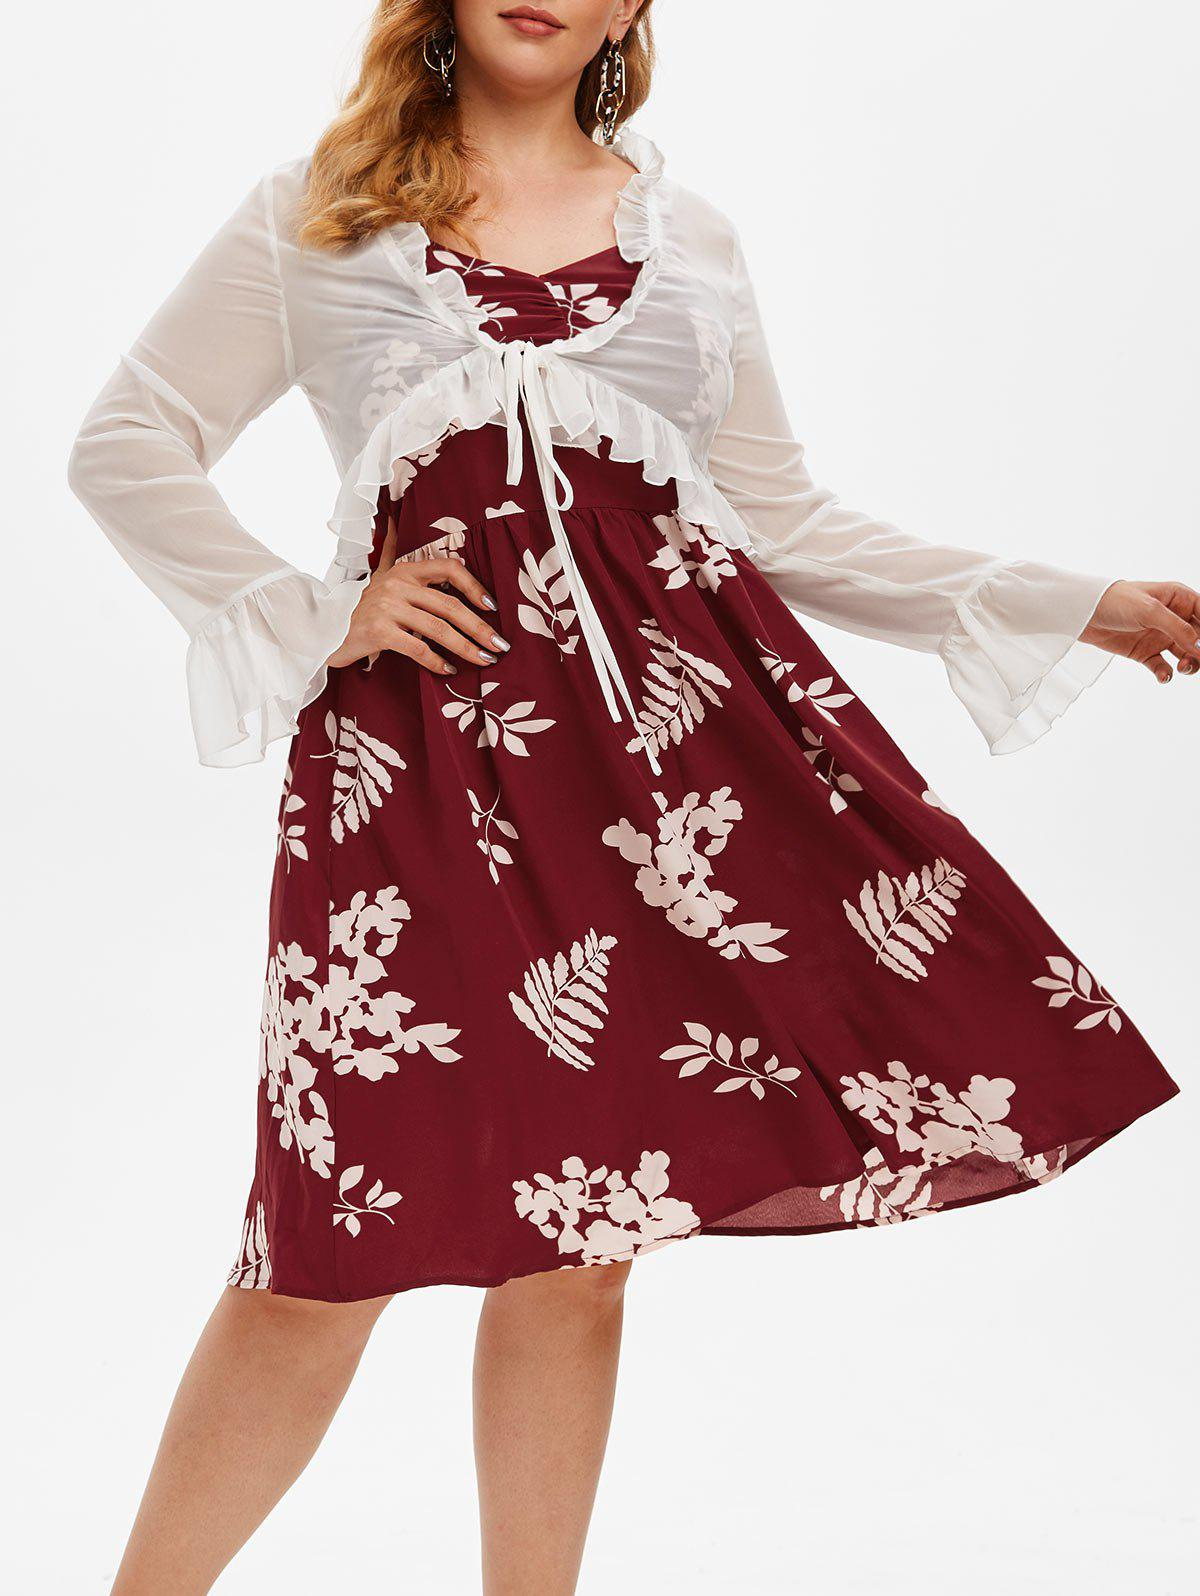 Plus Size Floral Print Dress and Ruffled Top Set - RED WINE 5X